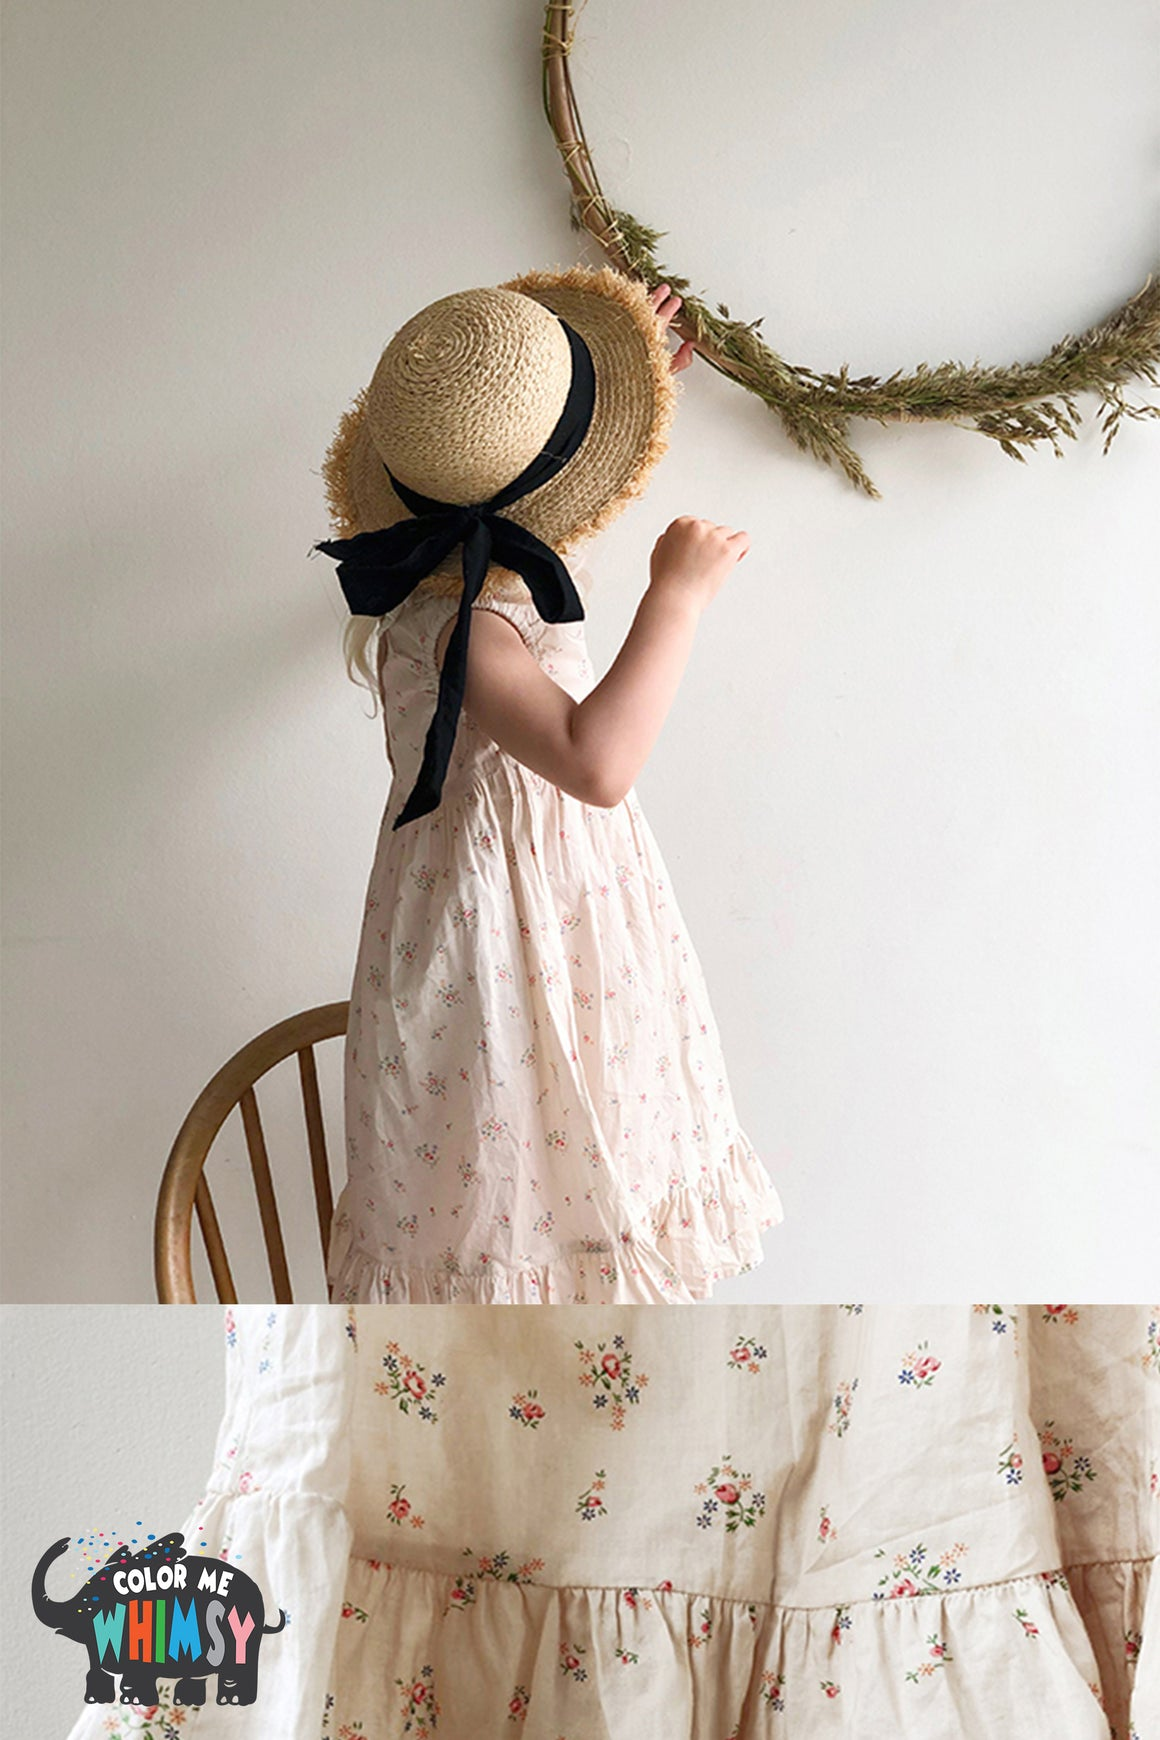 BN V-Neck Lace Torsion Dress at Color Me WHIMSY Hip Kid's Fashion Ethically Made in South Korea